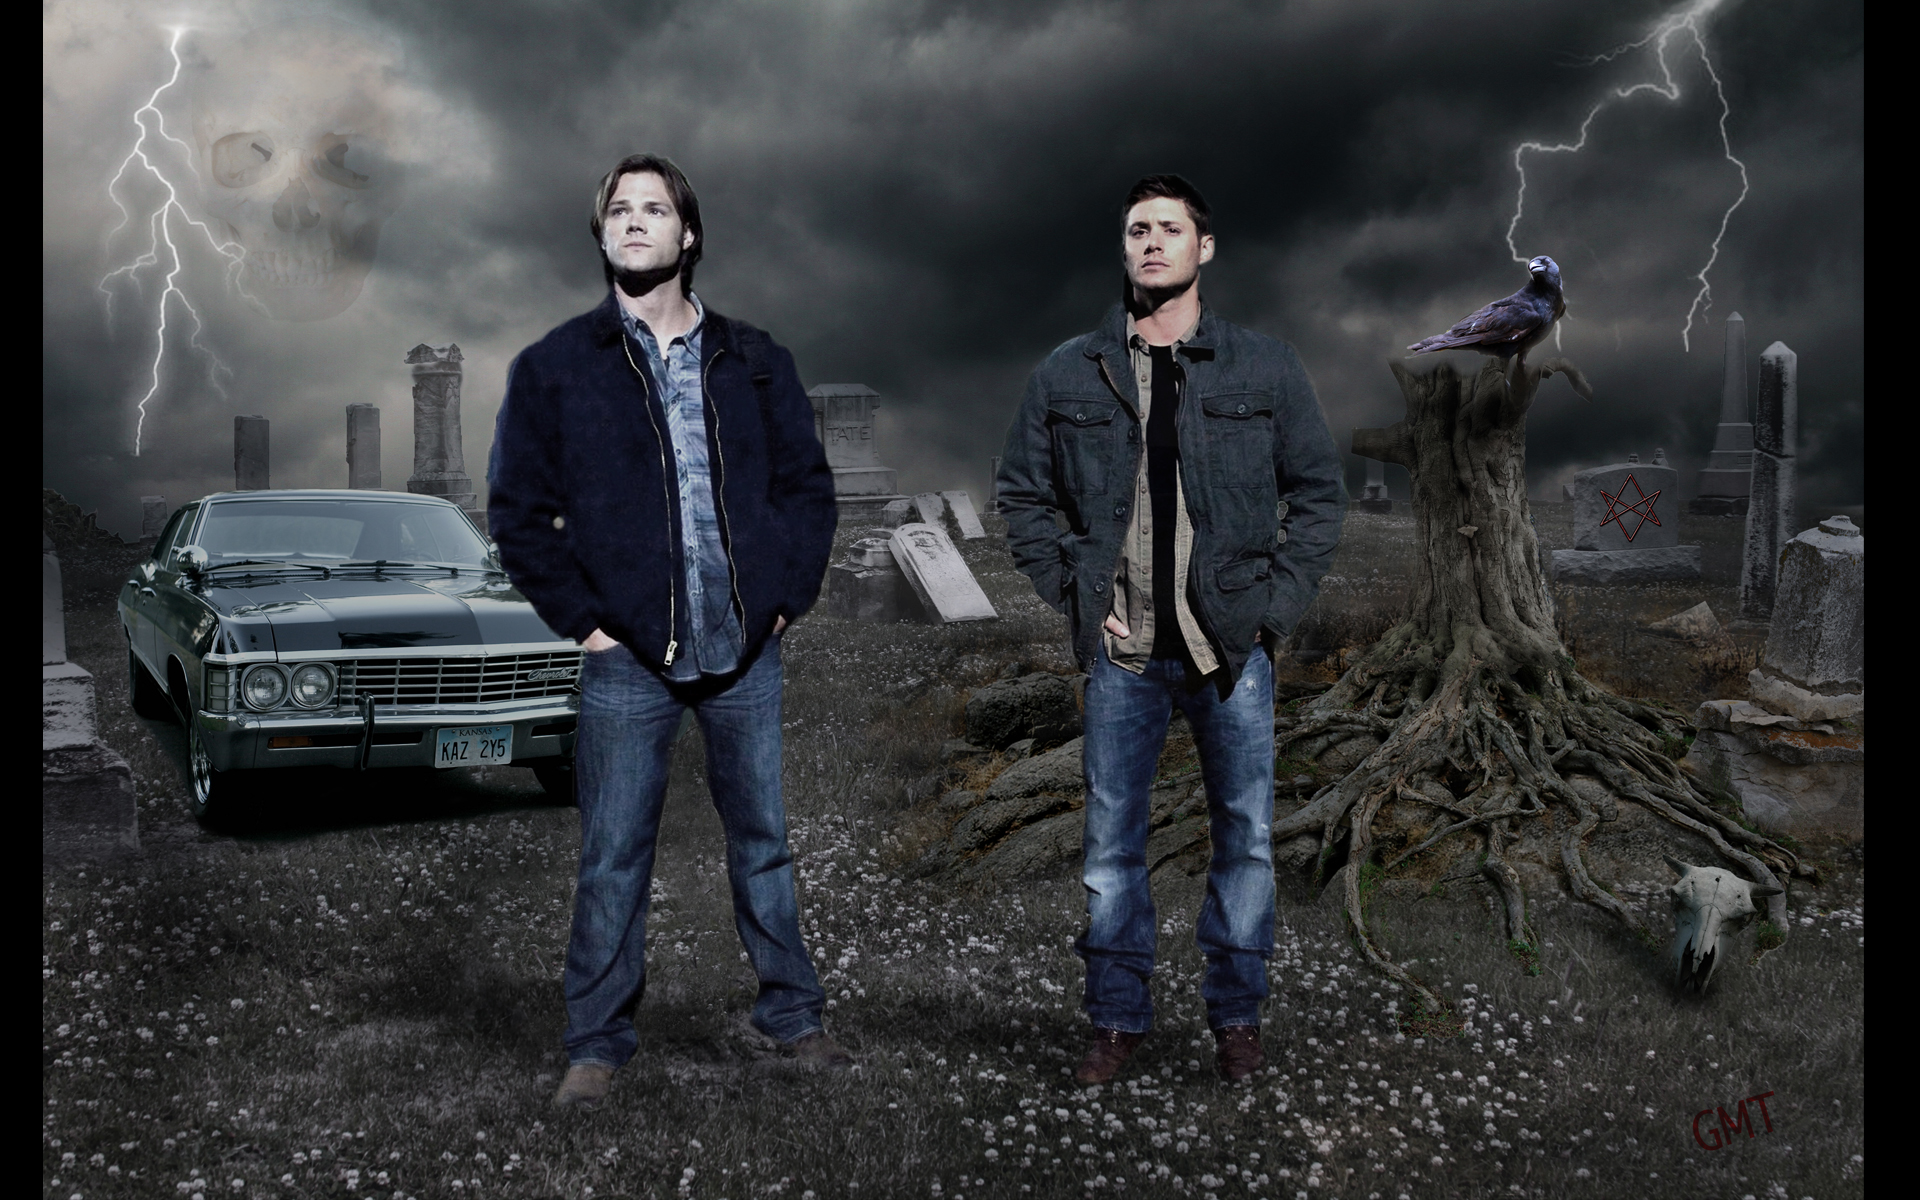 Supernatural Wallpapers, 36 High Quality Supernatural Wallpapers .